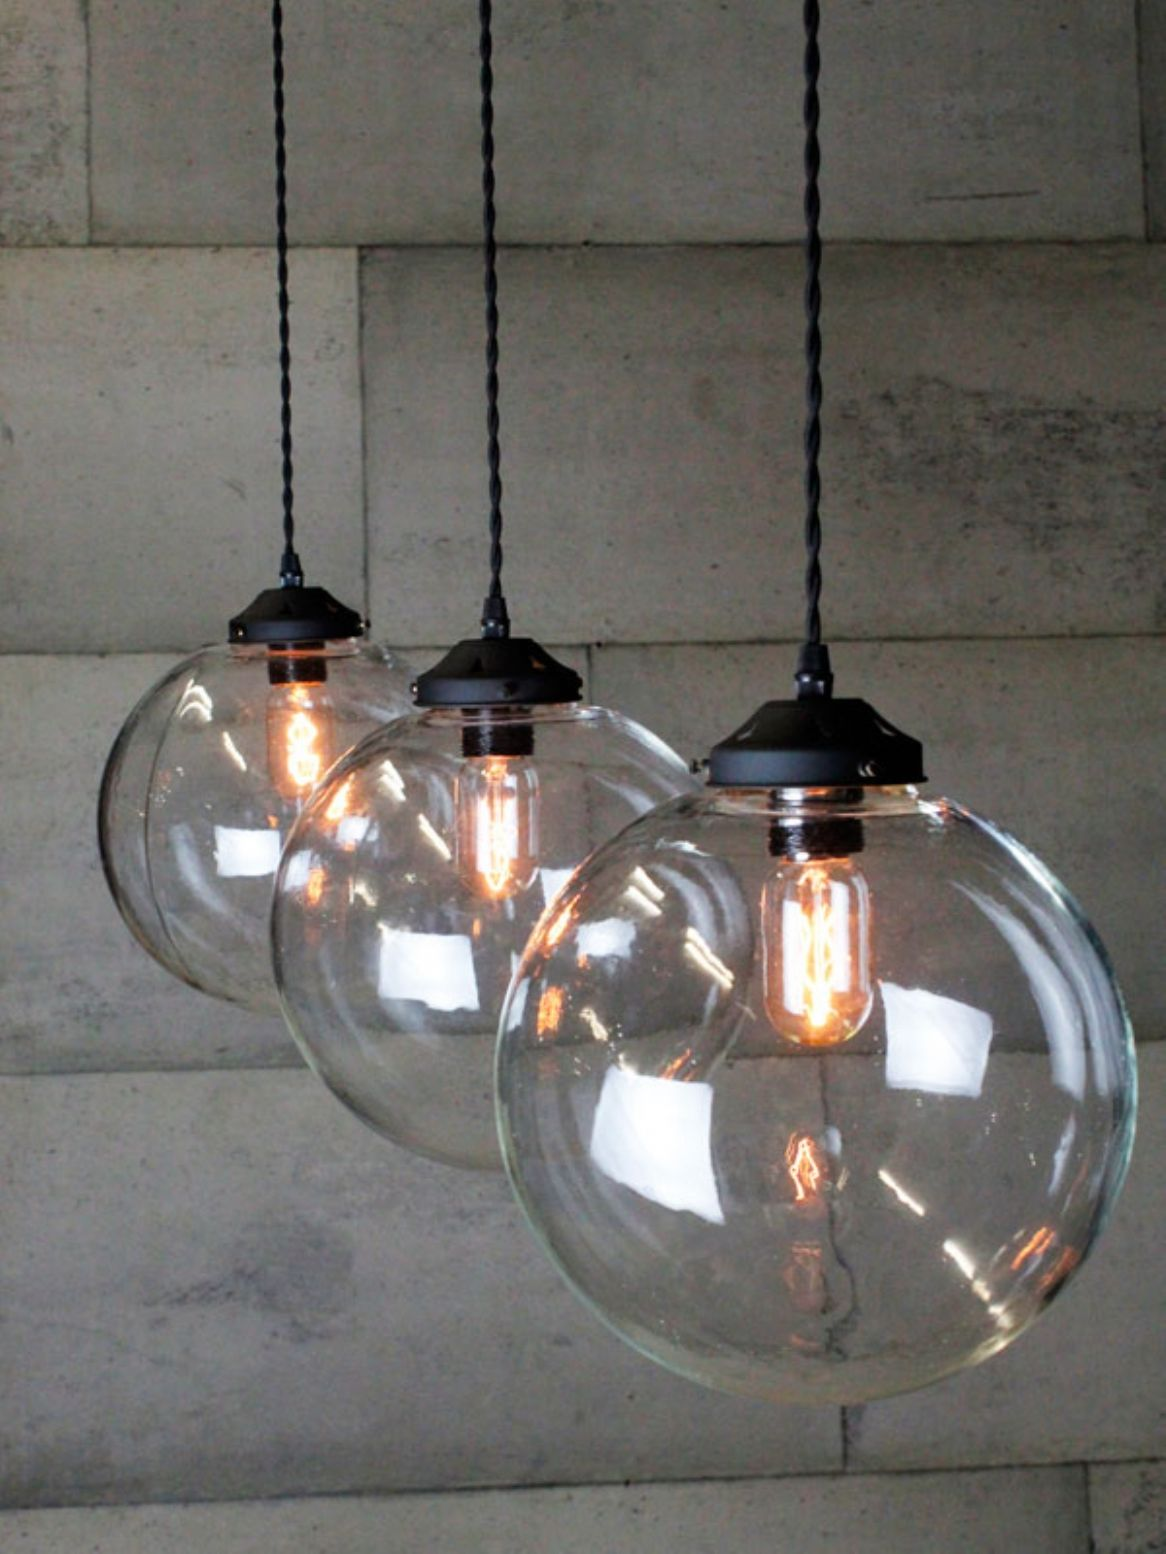 Triple Glass Globe Pendant Lighting - Globe pendant lights over island